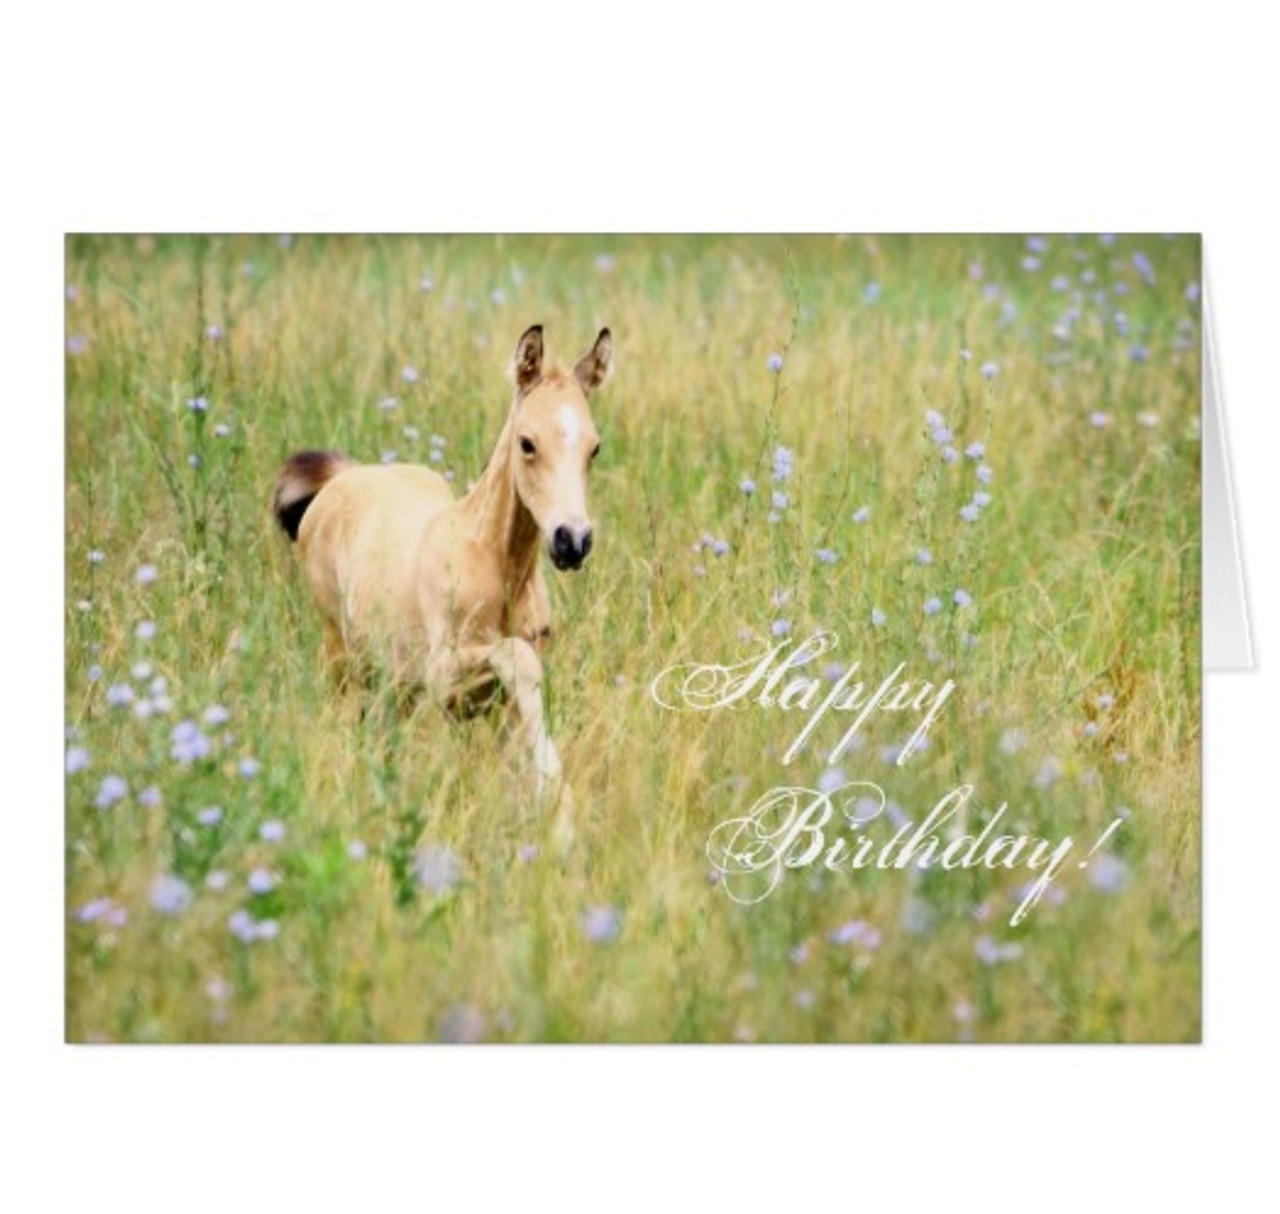 Sweet young horse foal birthday card the painting pony horse foal happy birthday card bookmarktalkfo Image collections